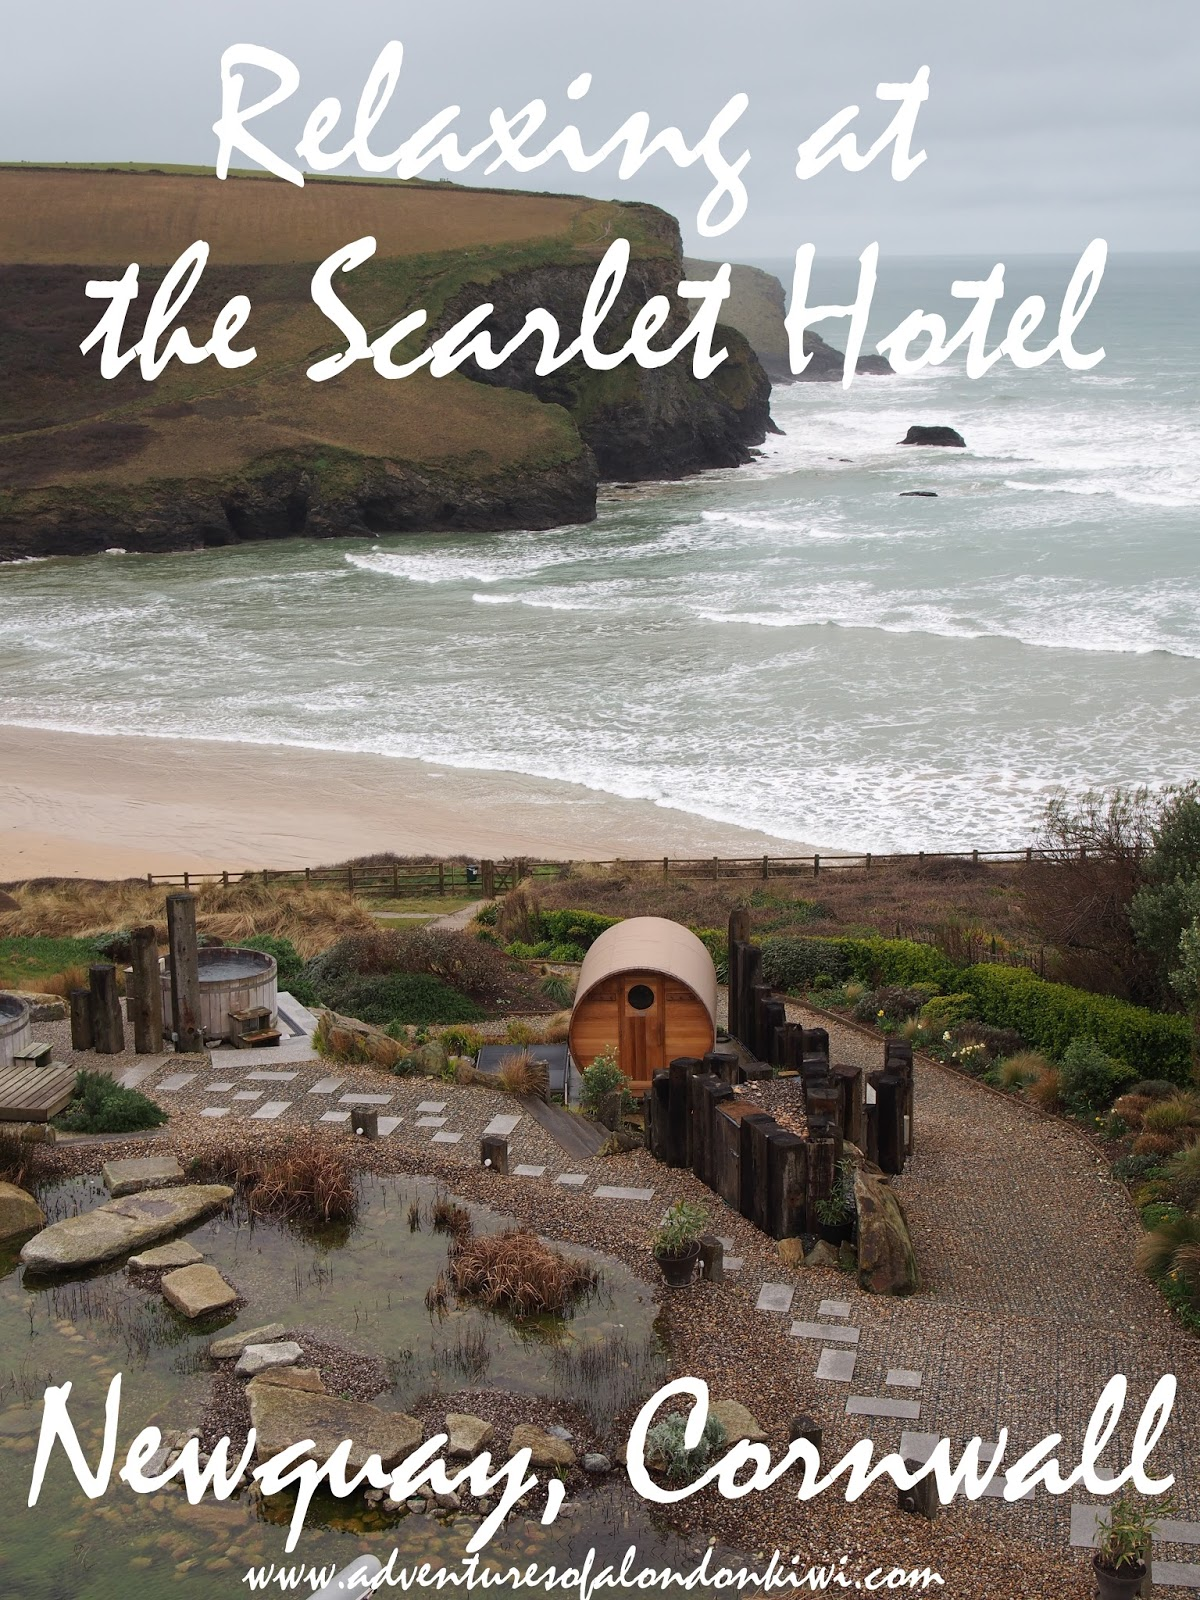 The Scarlet Newquay Luxury Hotel Cornwall Adventures of a London Kiwi